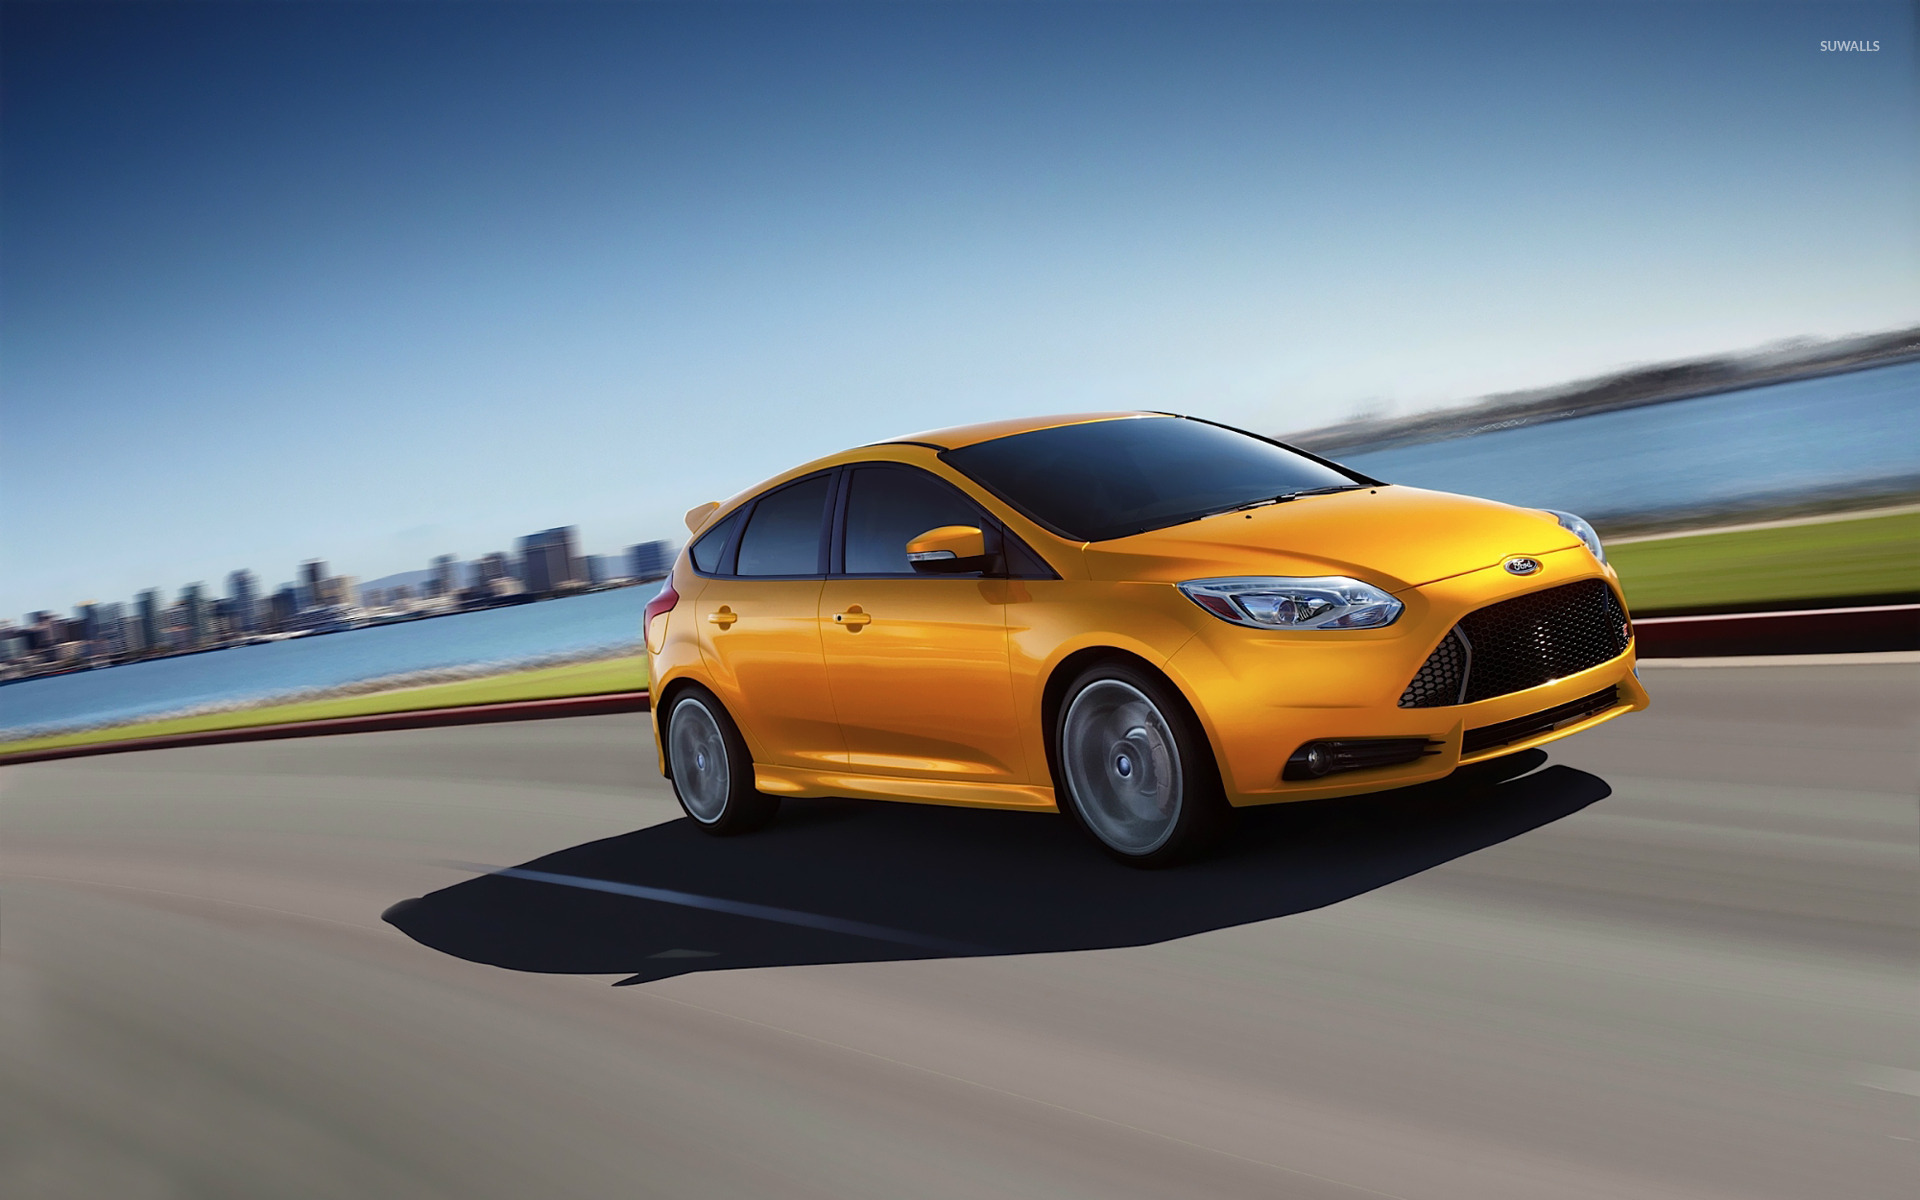 2013 Ford Focus ST wallpaper   Car wallpapers   17191 1680x1050